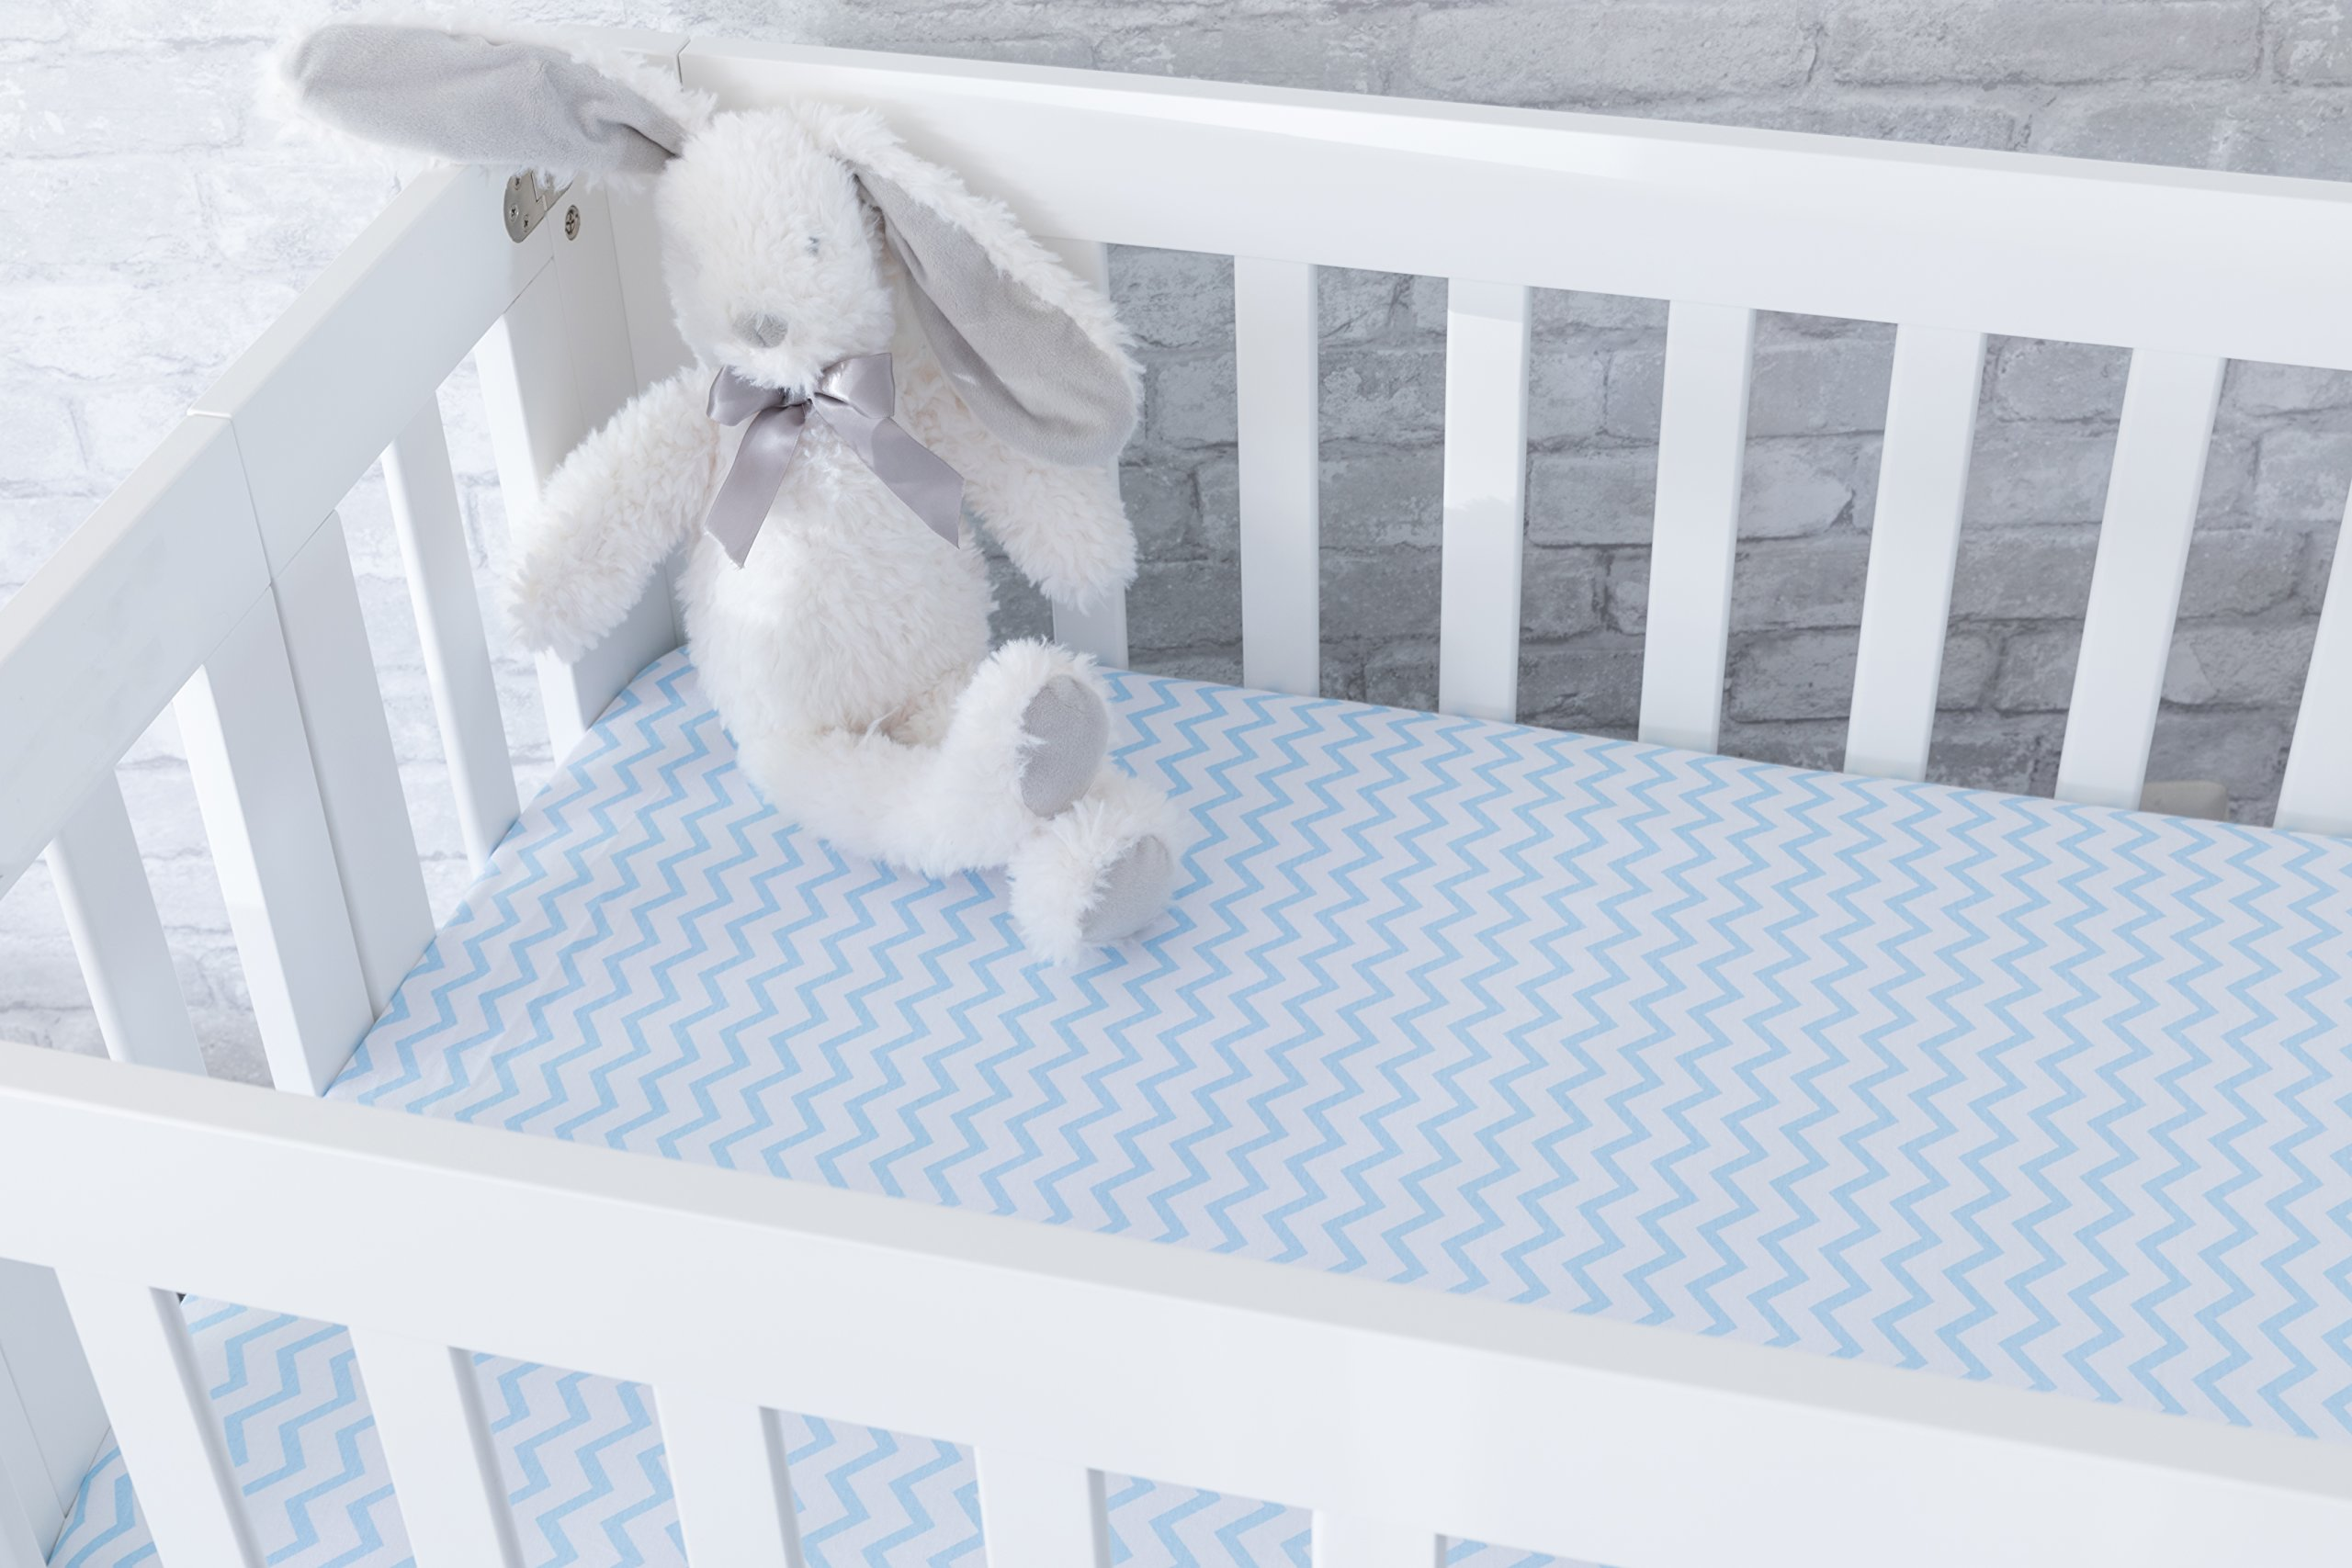 Pack N Play Portable Crib / Mini Crib Sheet Set 100% Jersey Cotton for Baby Boy by Ely's & Co. - Blue Chevron and Polka Dot 2 Pack by Ely's & Co (Image #6)